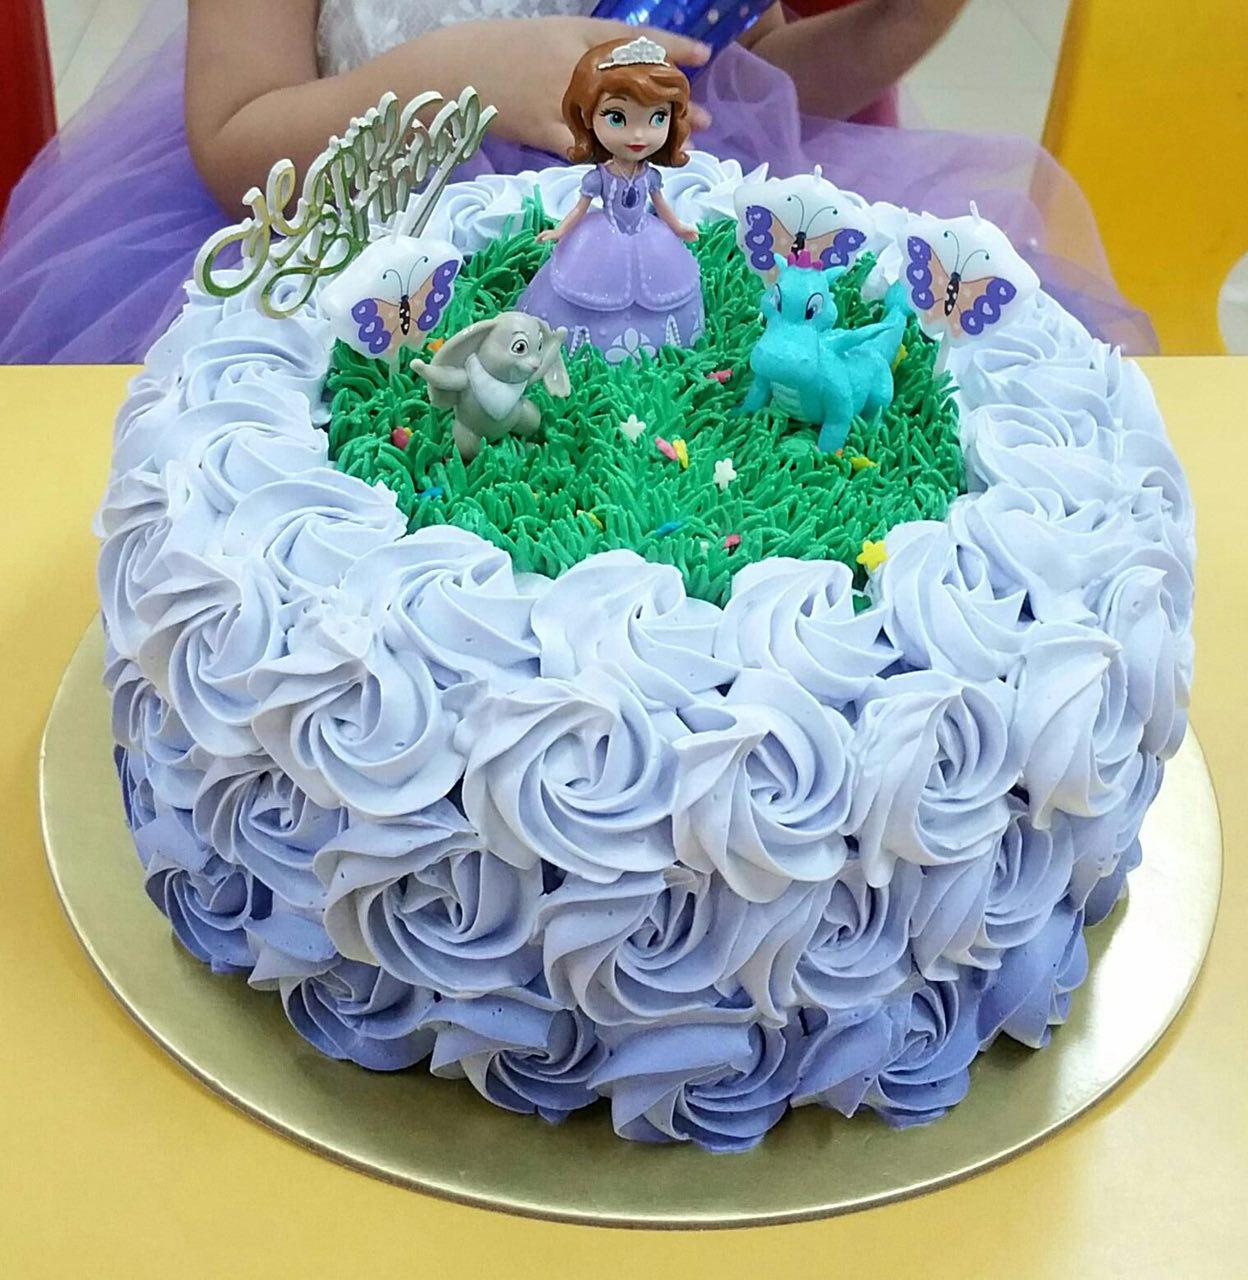 Princess Cakes Singapore A Sweet Memory For Your Princess